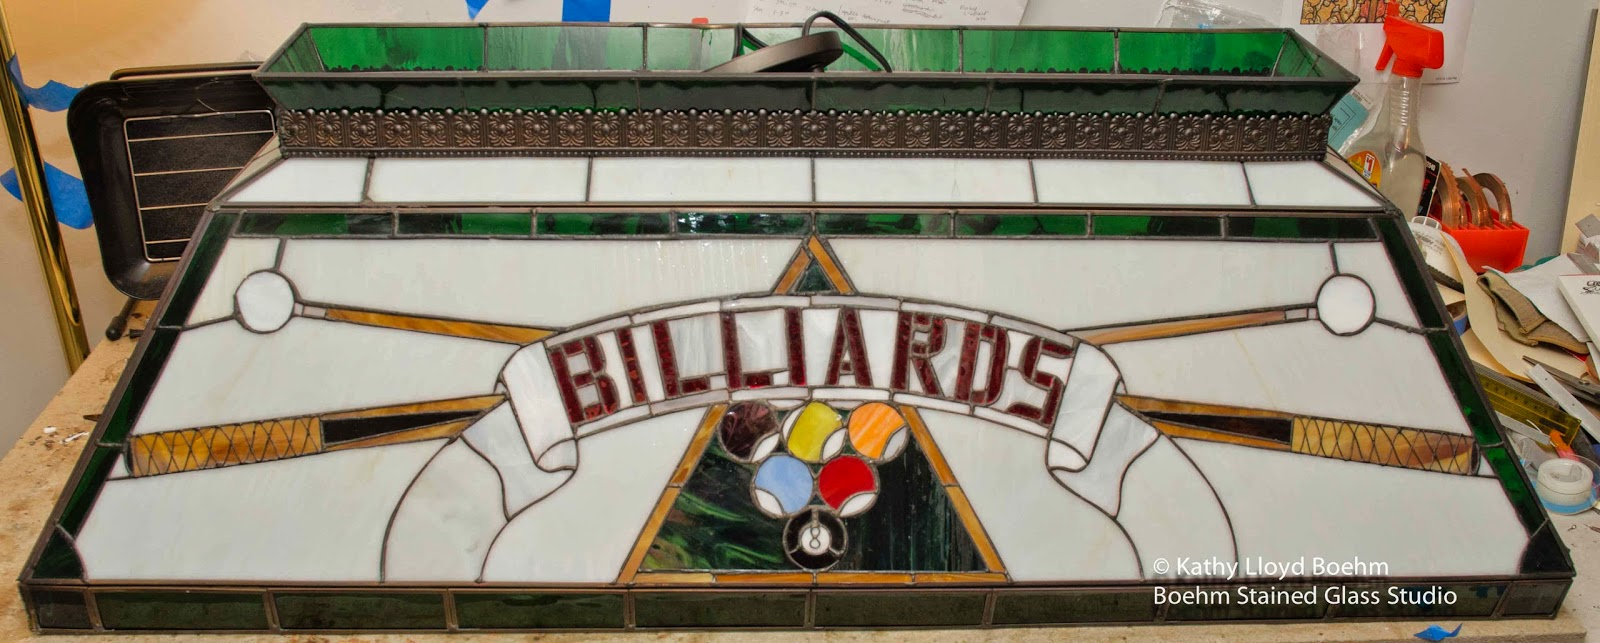 Boehm Stained Glass Blog: Repair Billiards Pool Table Lamp